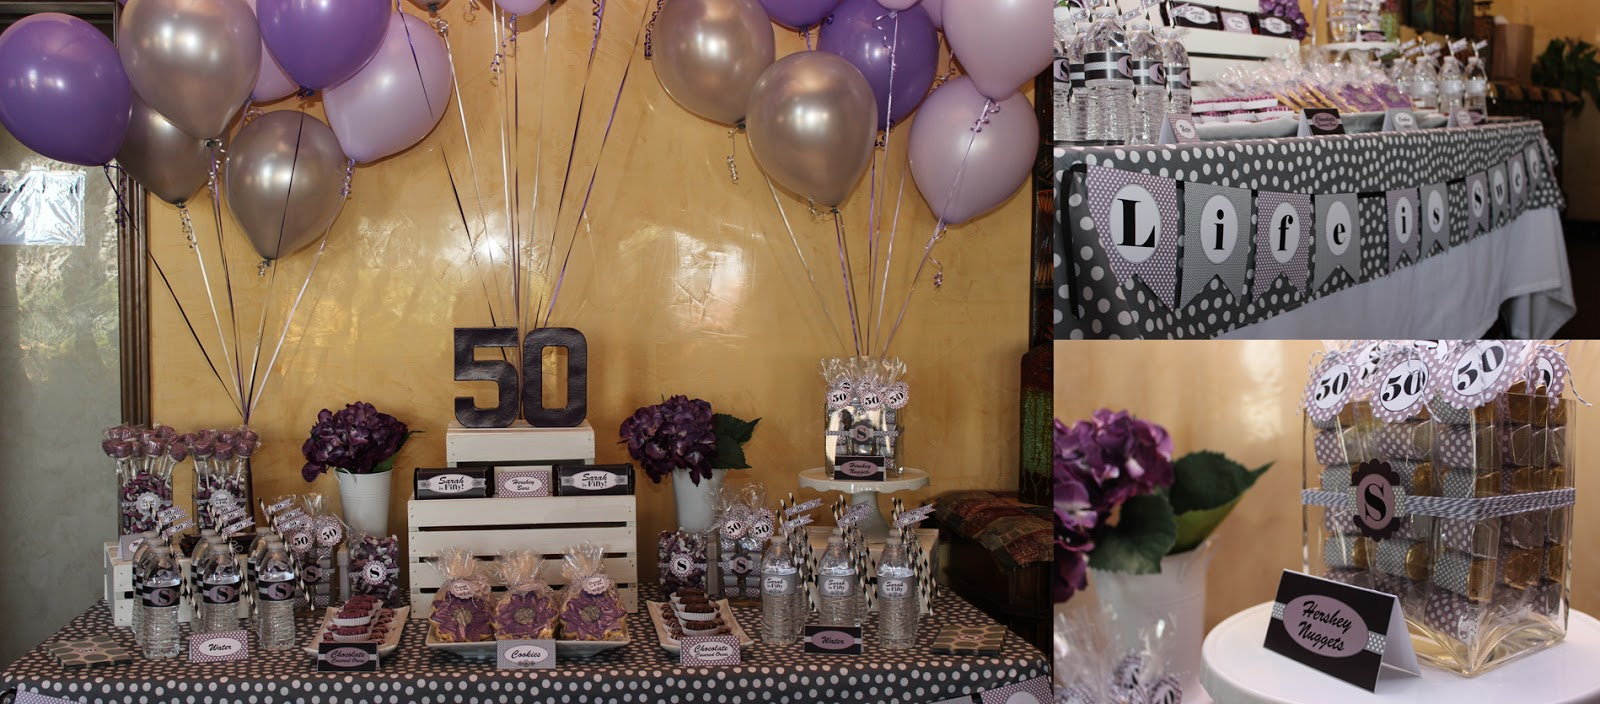 The sugar bee bungalow party bee sarah 39 s 50th birthday for 50 birthday party decoration ideas